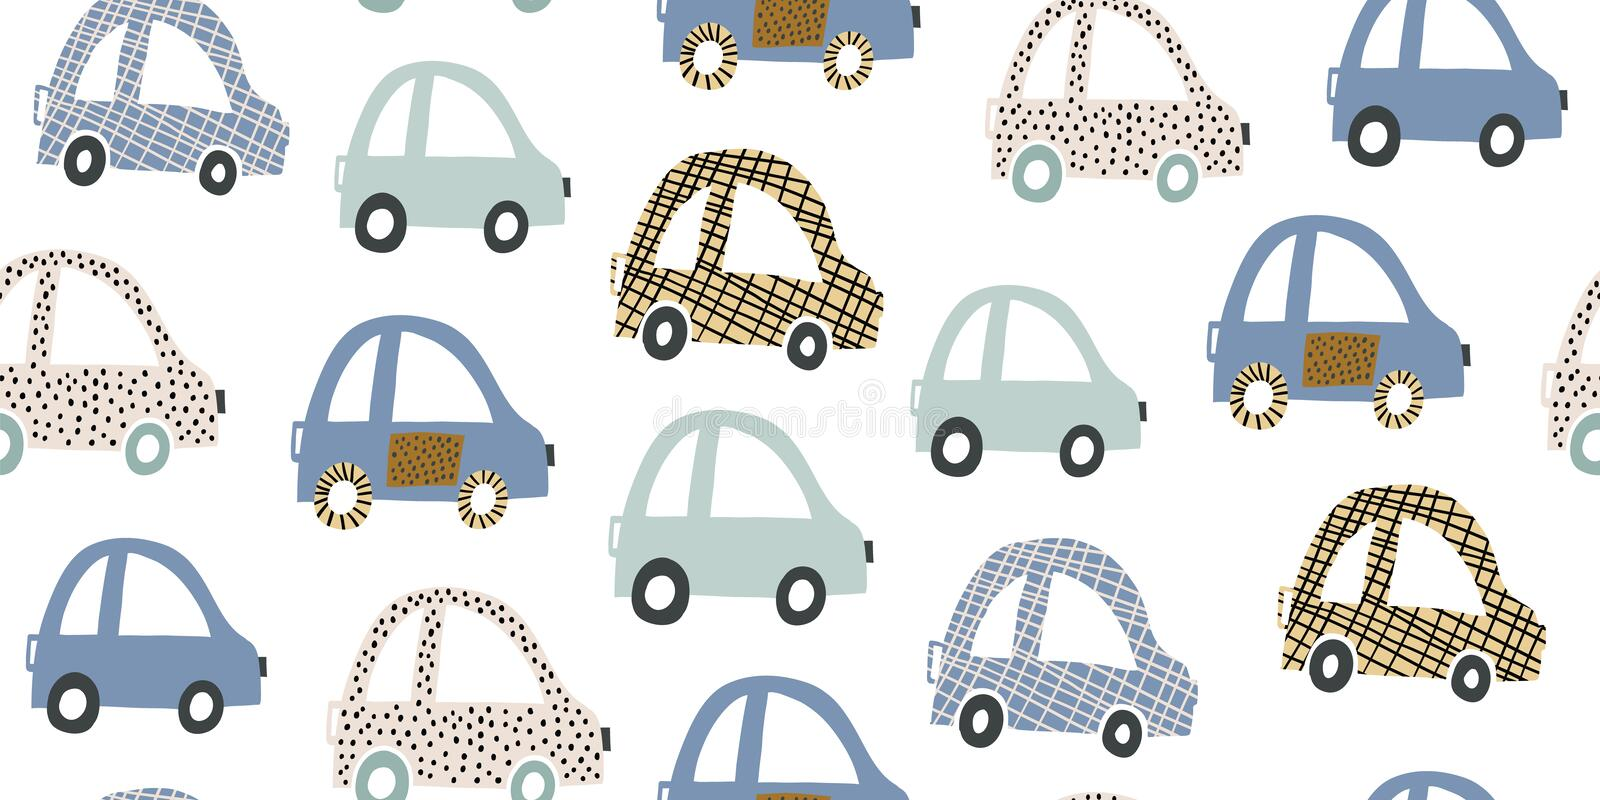 Kids handdrawn seamless pattern with colorful cars. Kids hand drawn seamless pattern with colorful cute cars. Nursery minimalistic background. Pastel colors for vector illustration